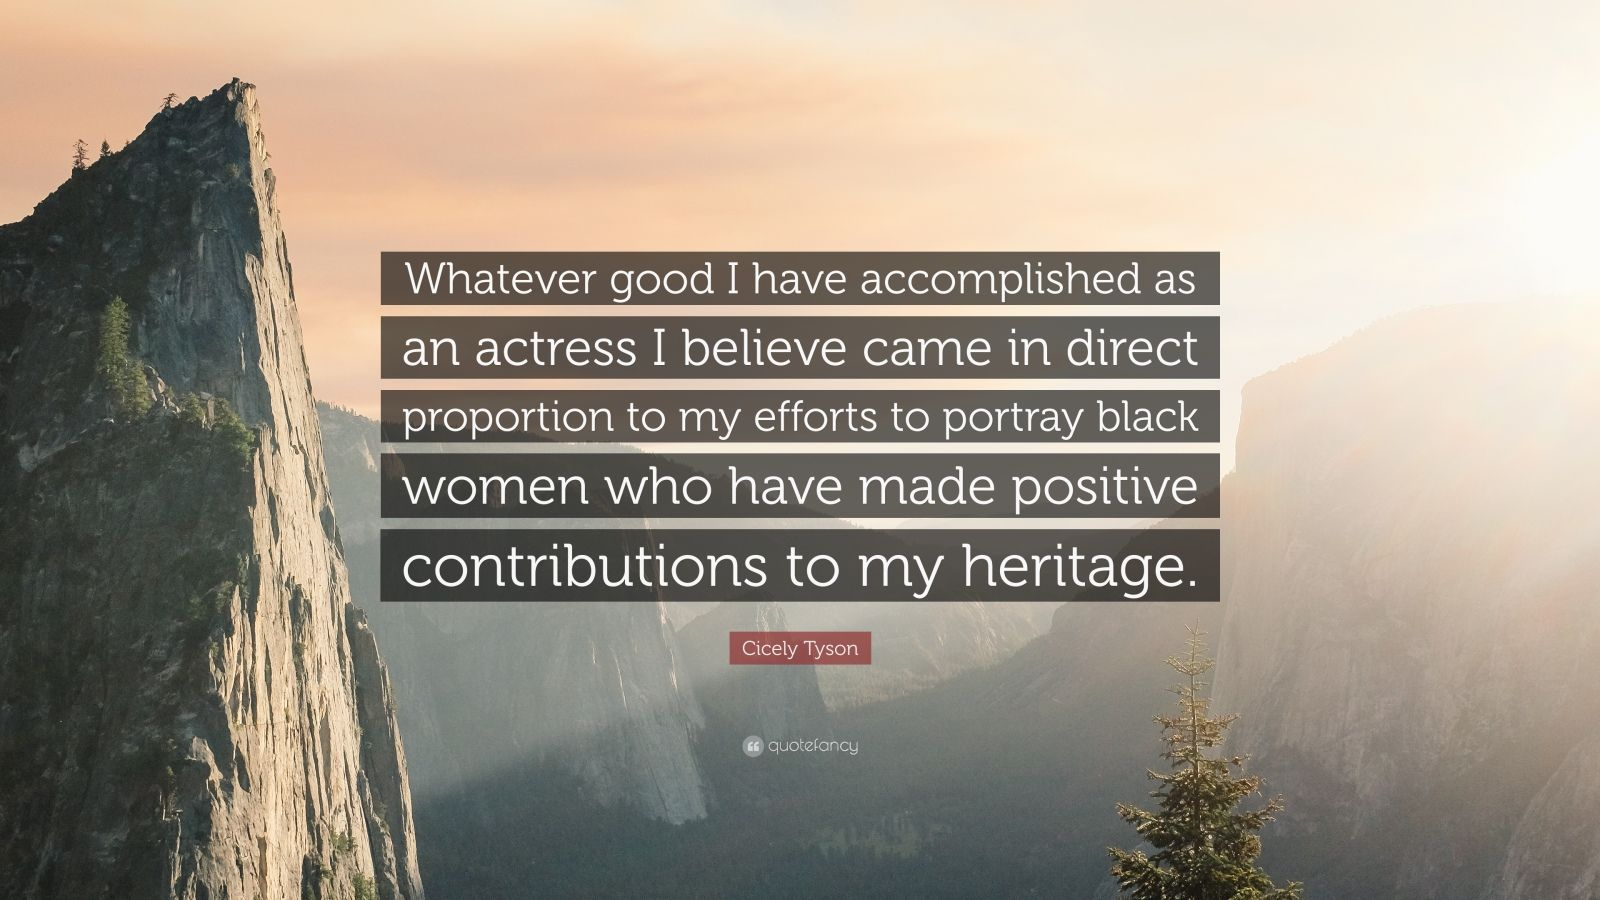 """Cicely Tyson Quote: """"Whatever good I have accomplished as an actress I believe came in direct proportion to my efforts to portray black women who have made positive contributions to my heritage."""""""